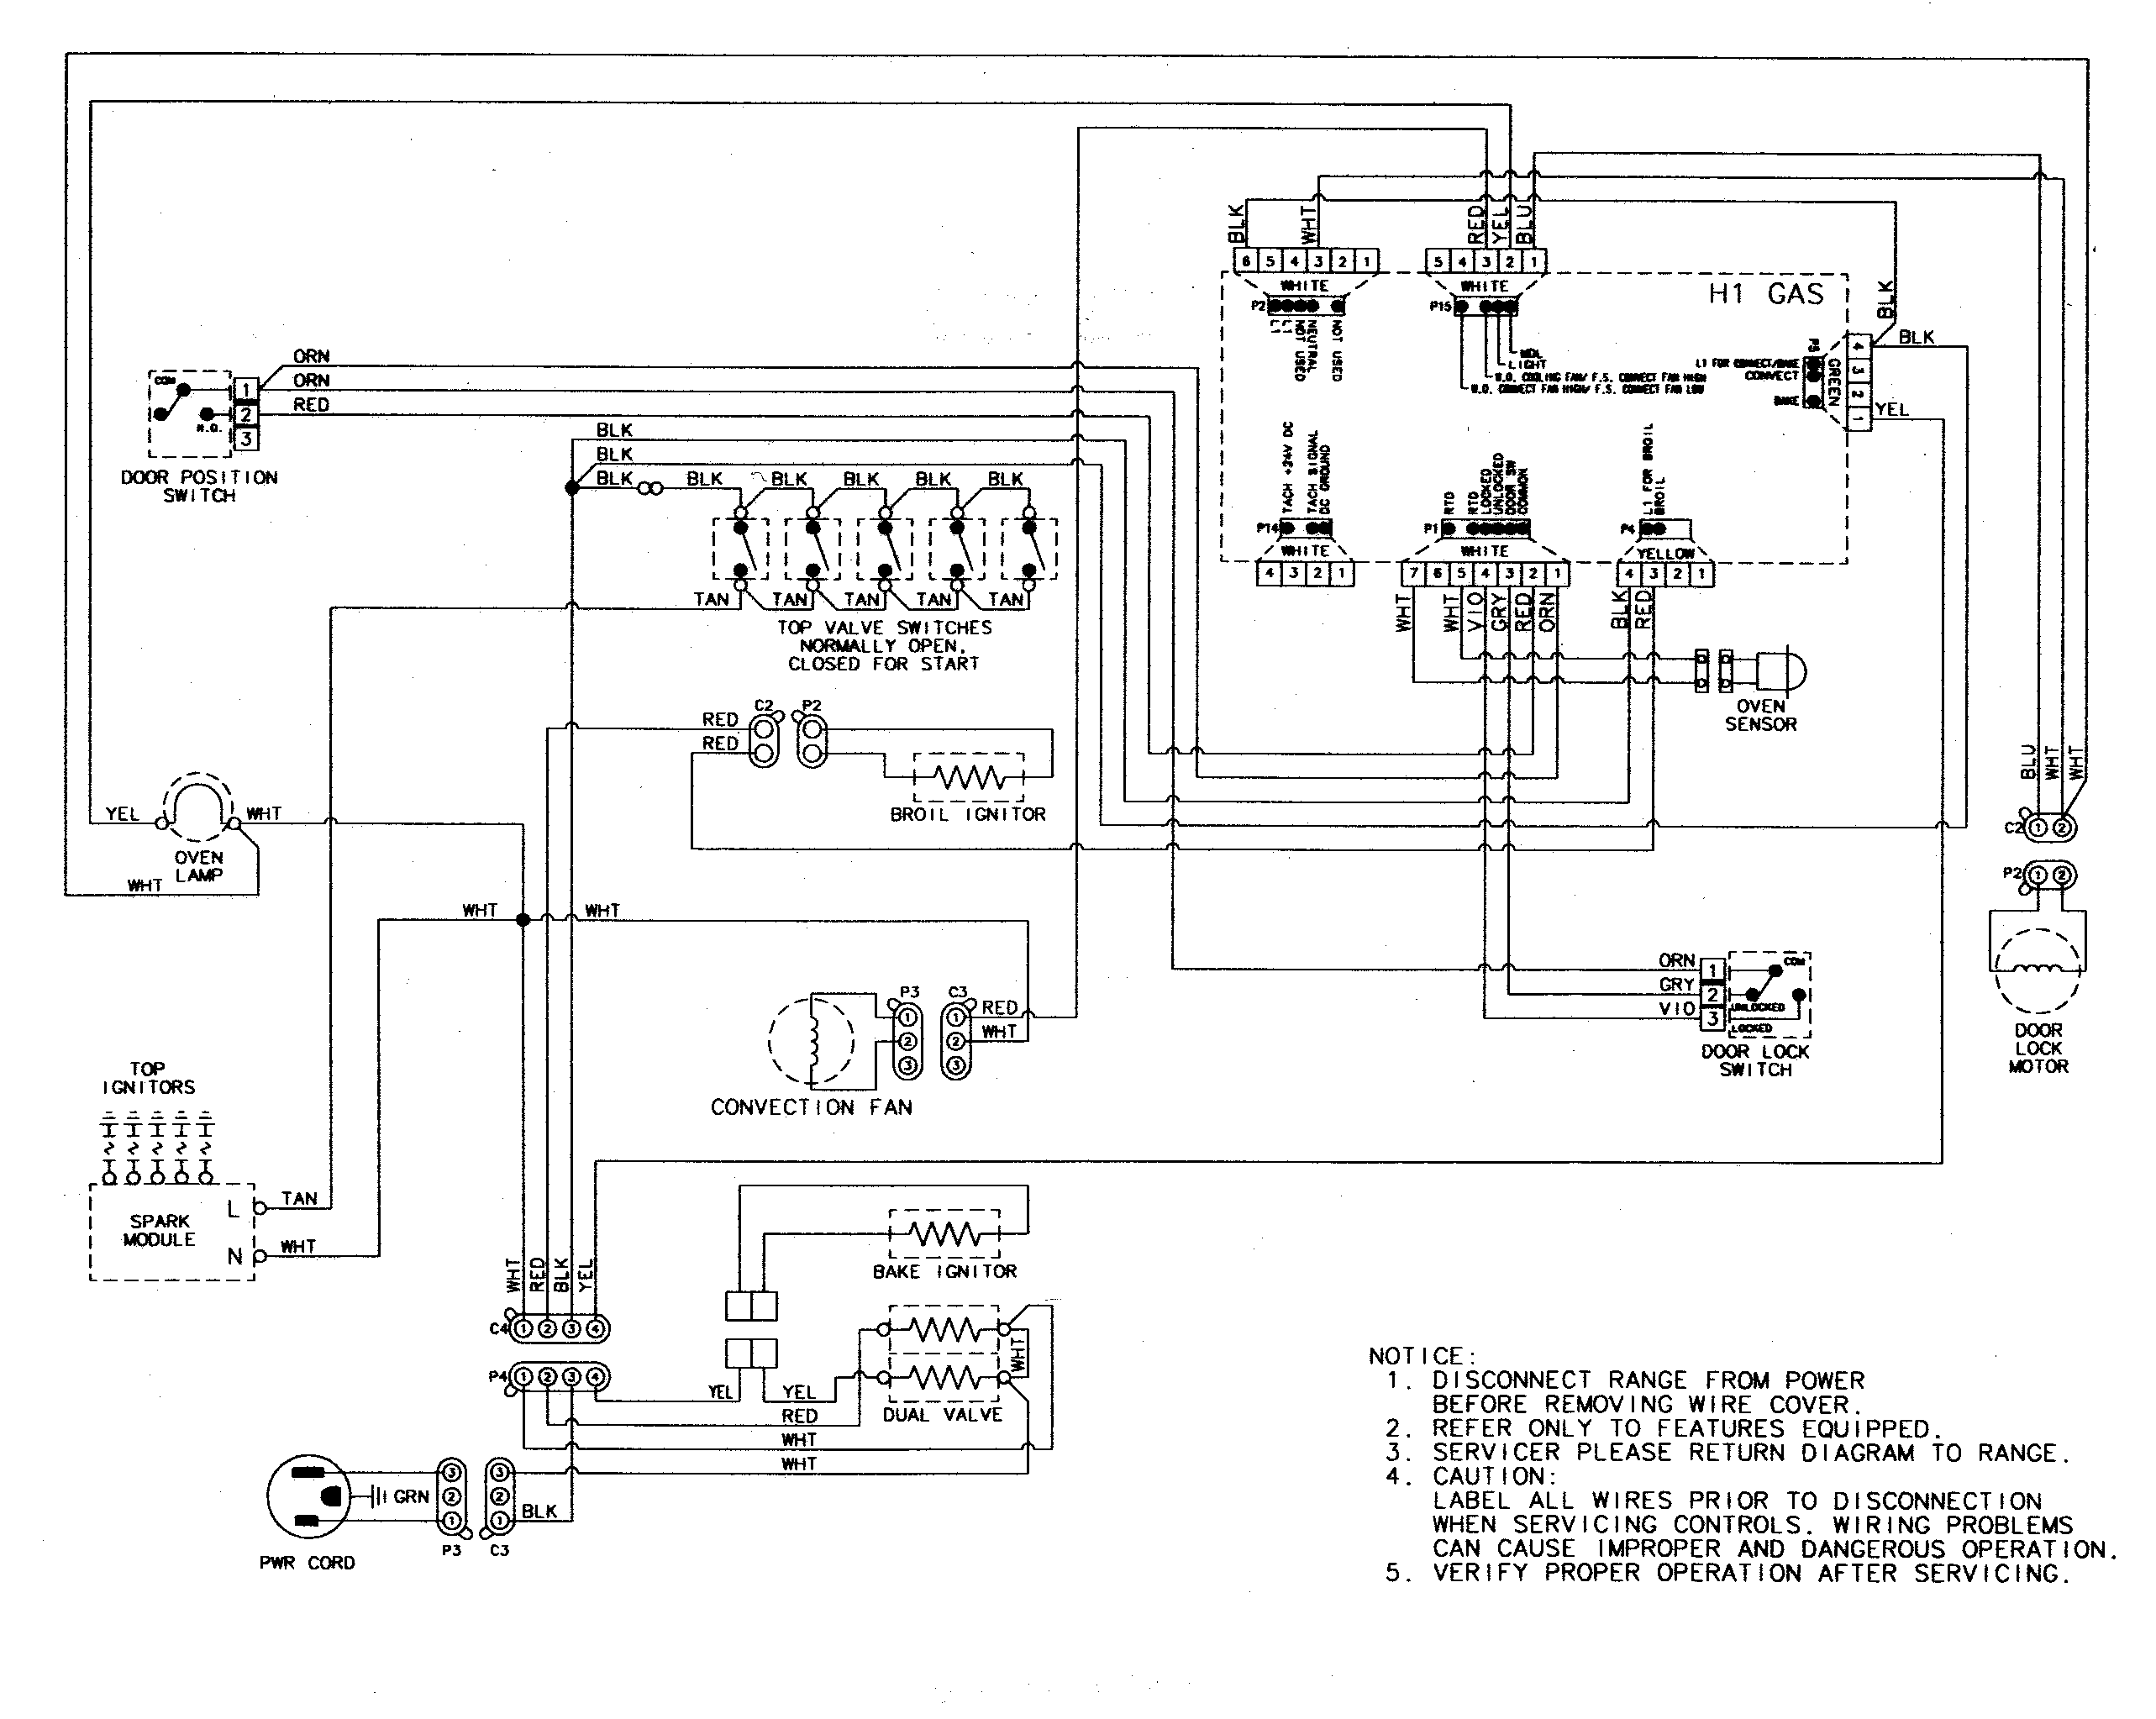 gas stove wiring diagram wiring diagram rh publishd co Residential Wiring Circuits Electric Circuit